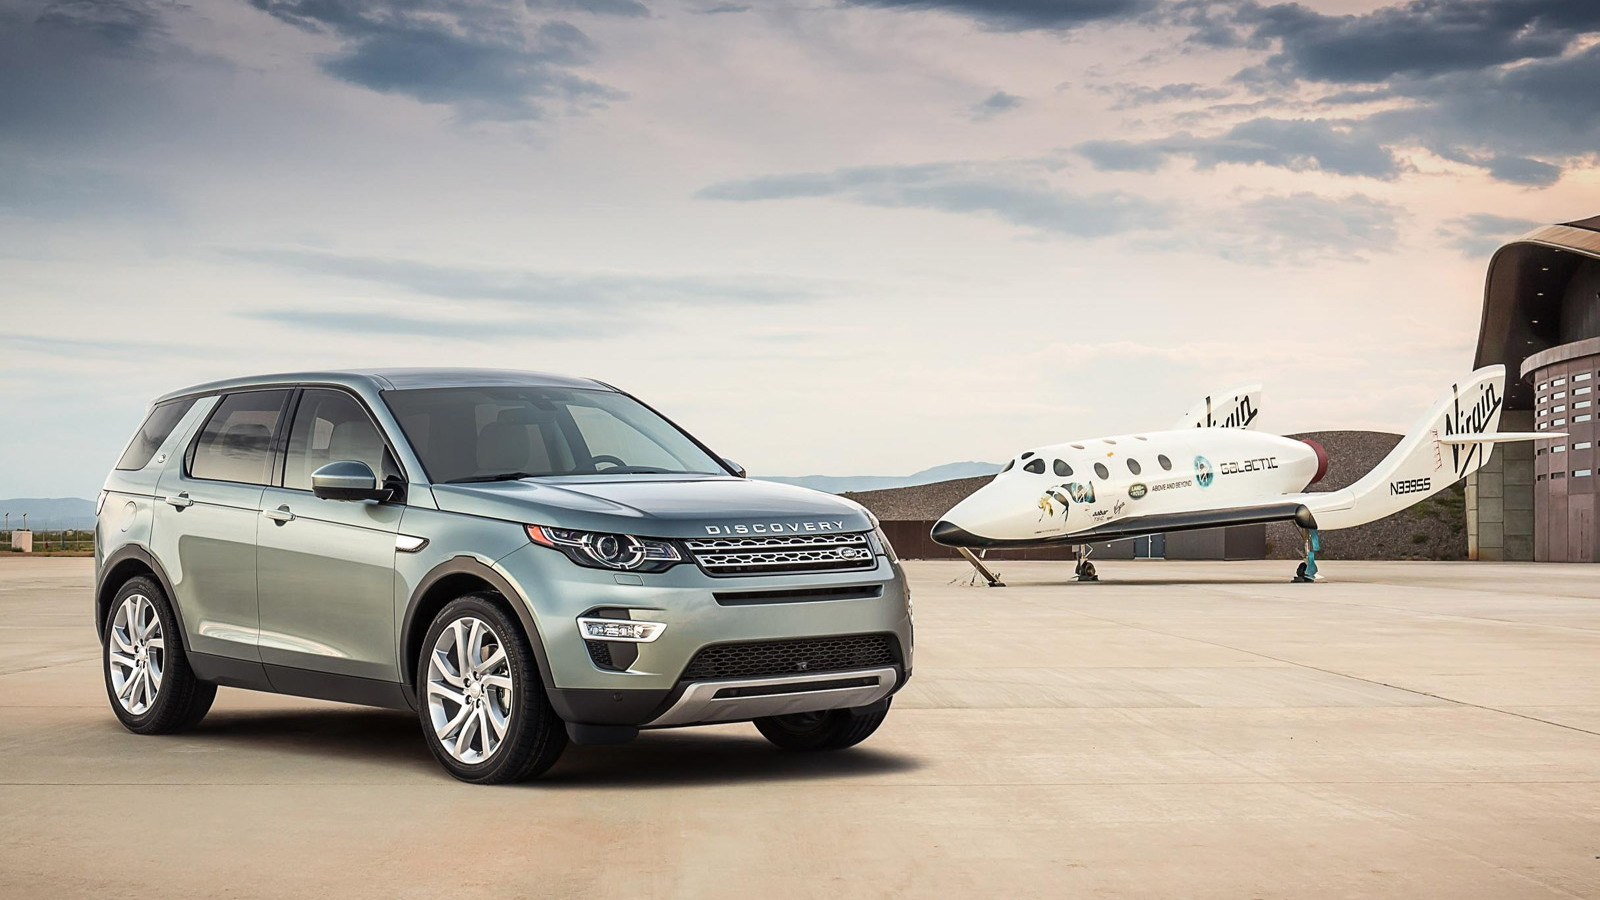 2016 Land Rover Discovery Sport at Virgin Galactic's Spaceport America